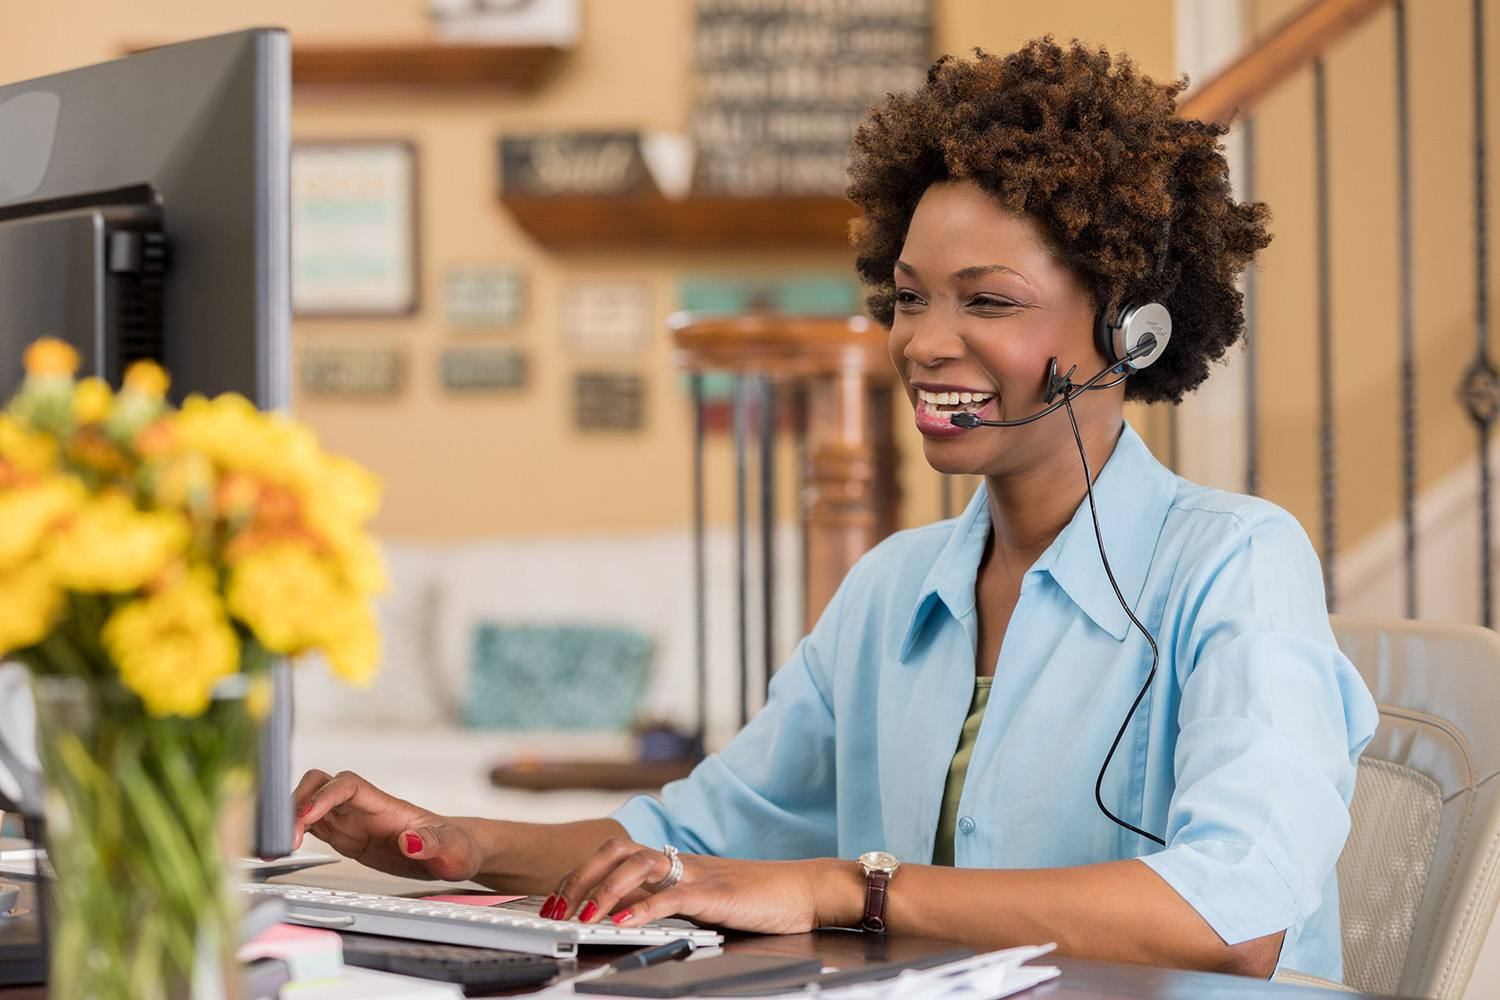 Temporary worker uses headset to talk to a client